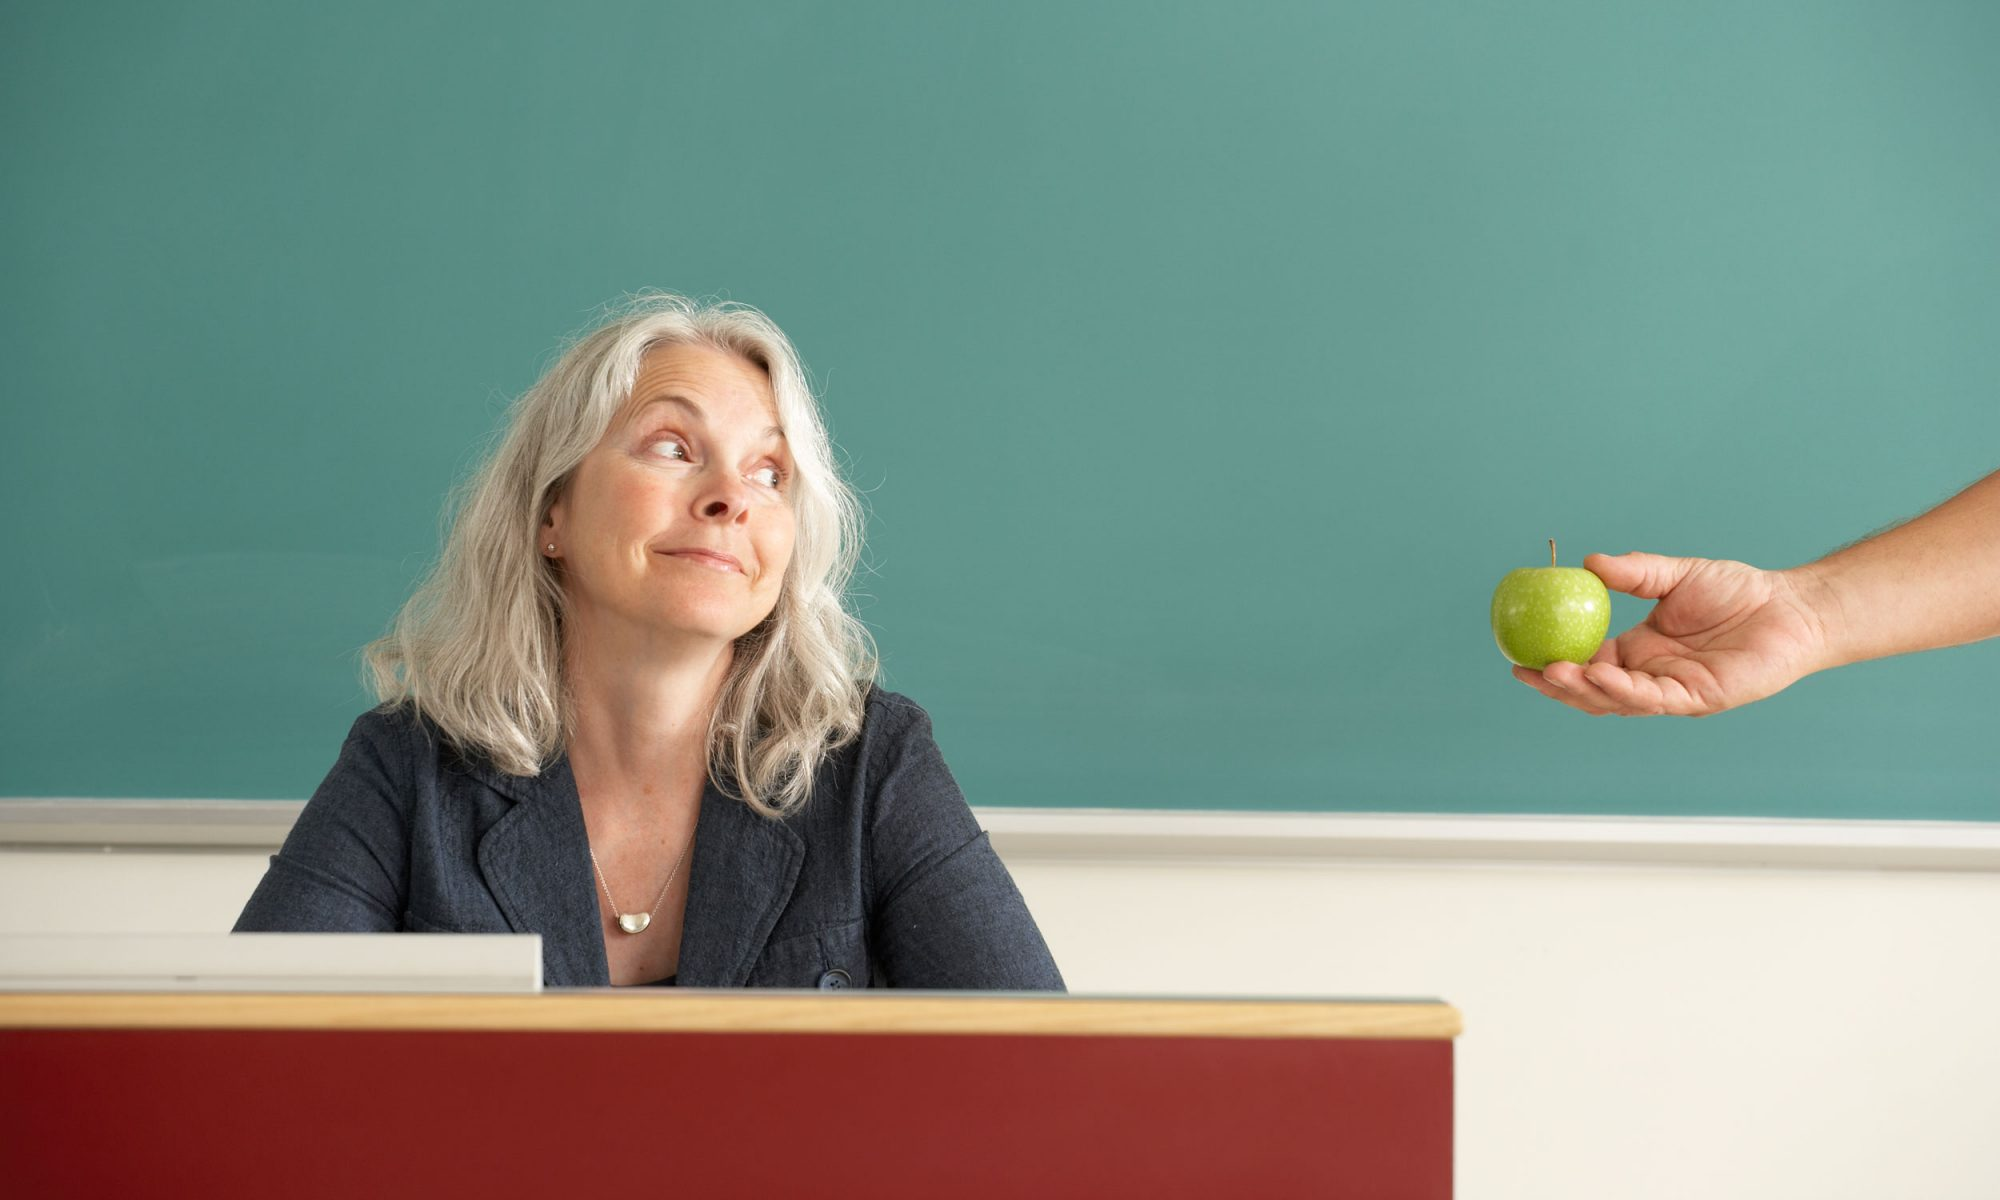 EC: The Reason We Give Apples to Teachers